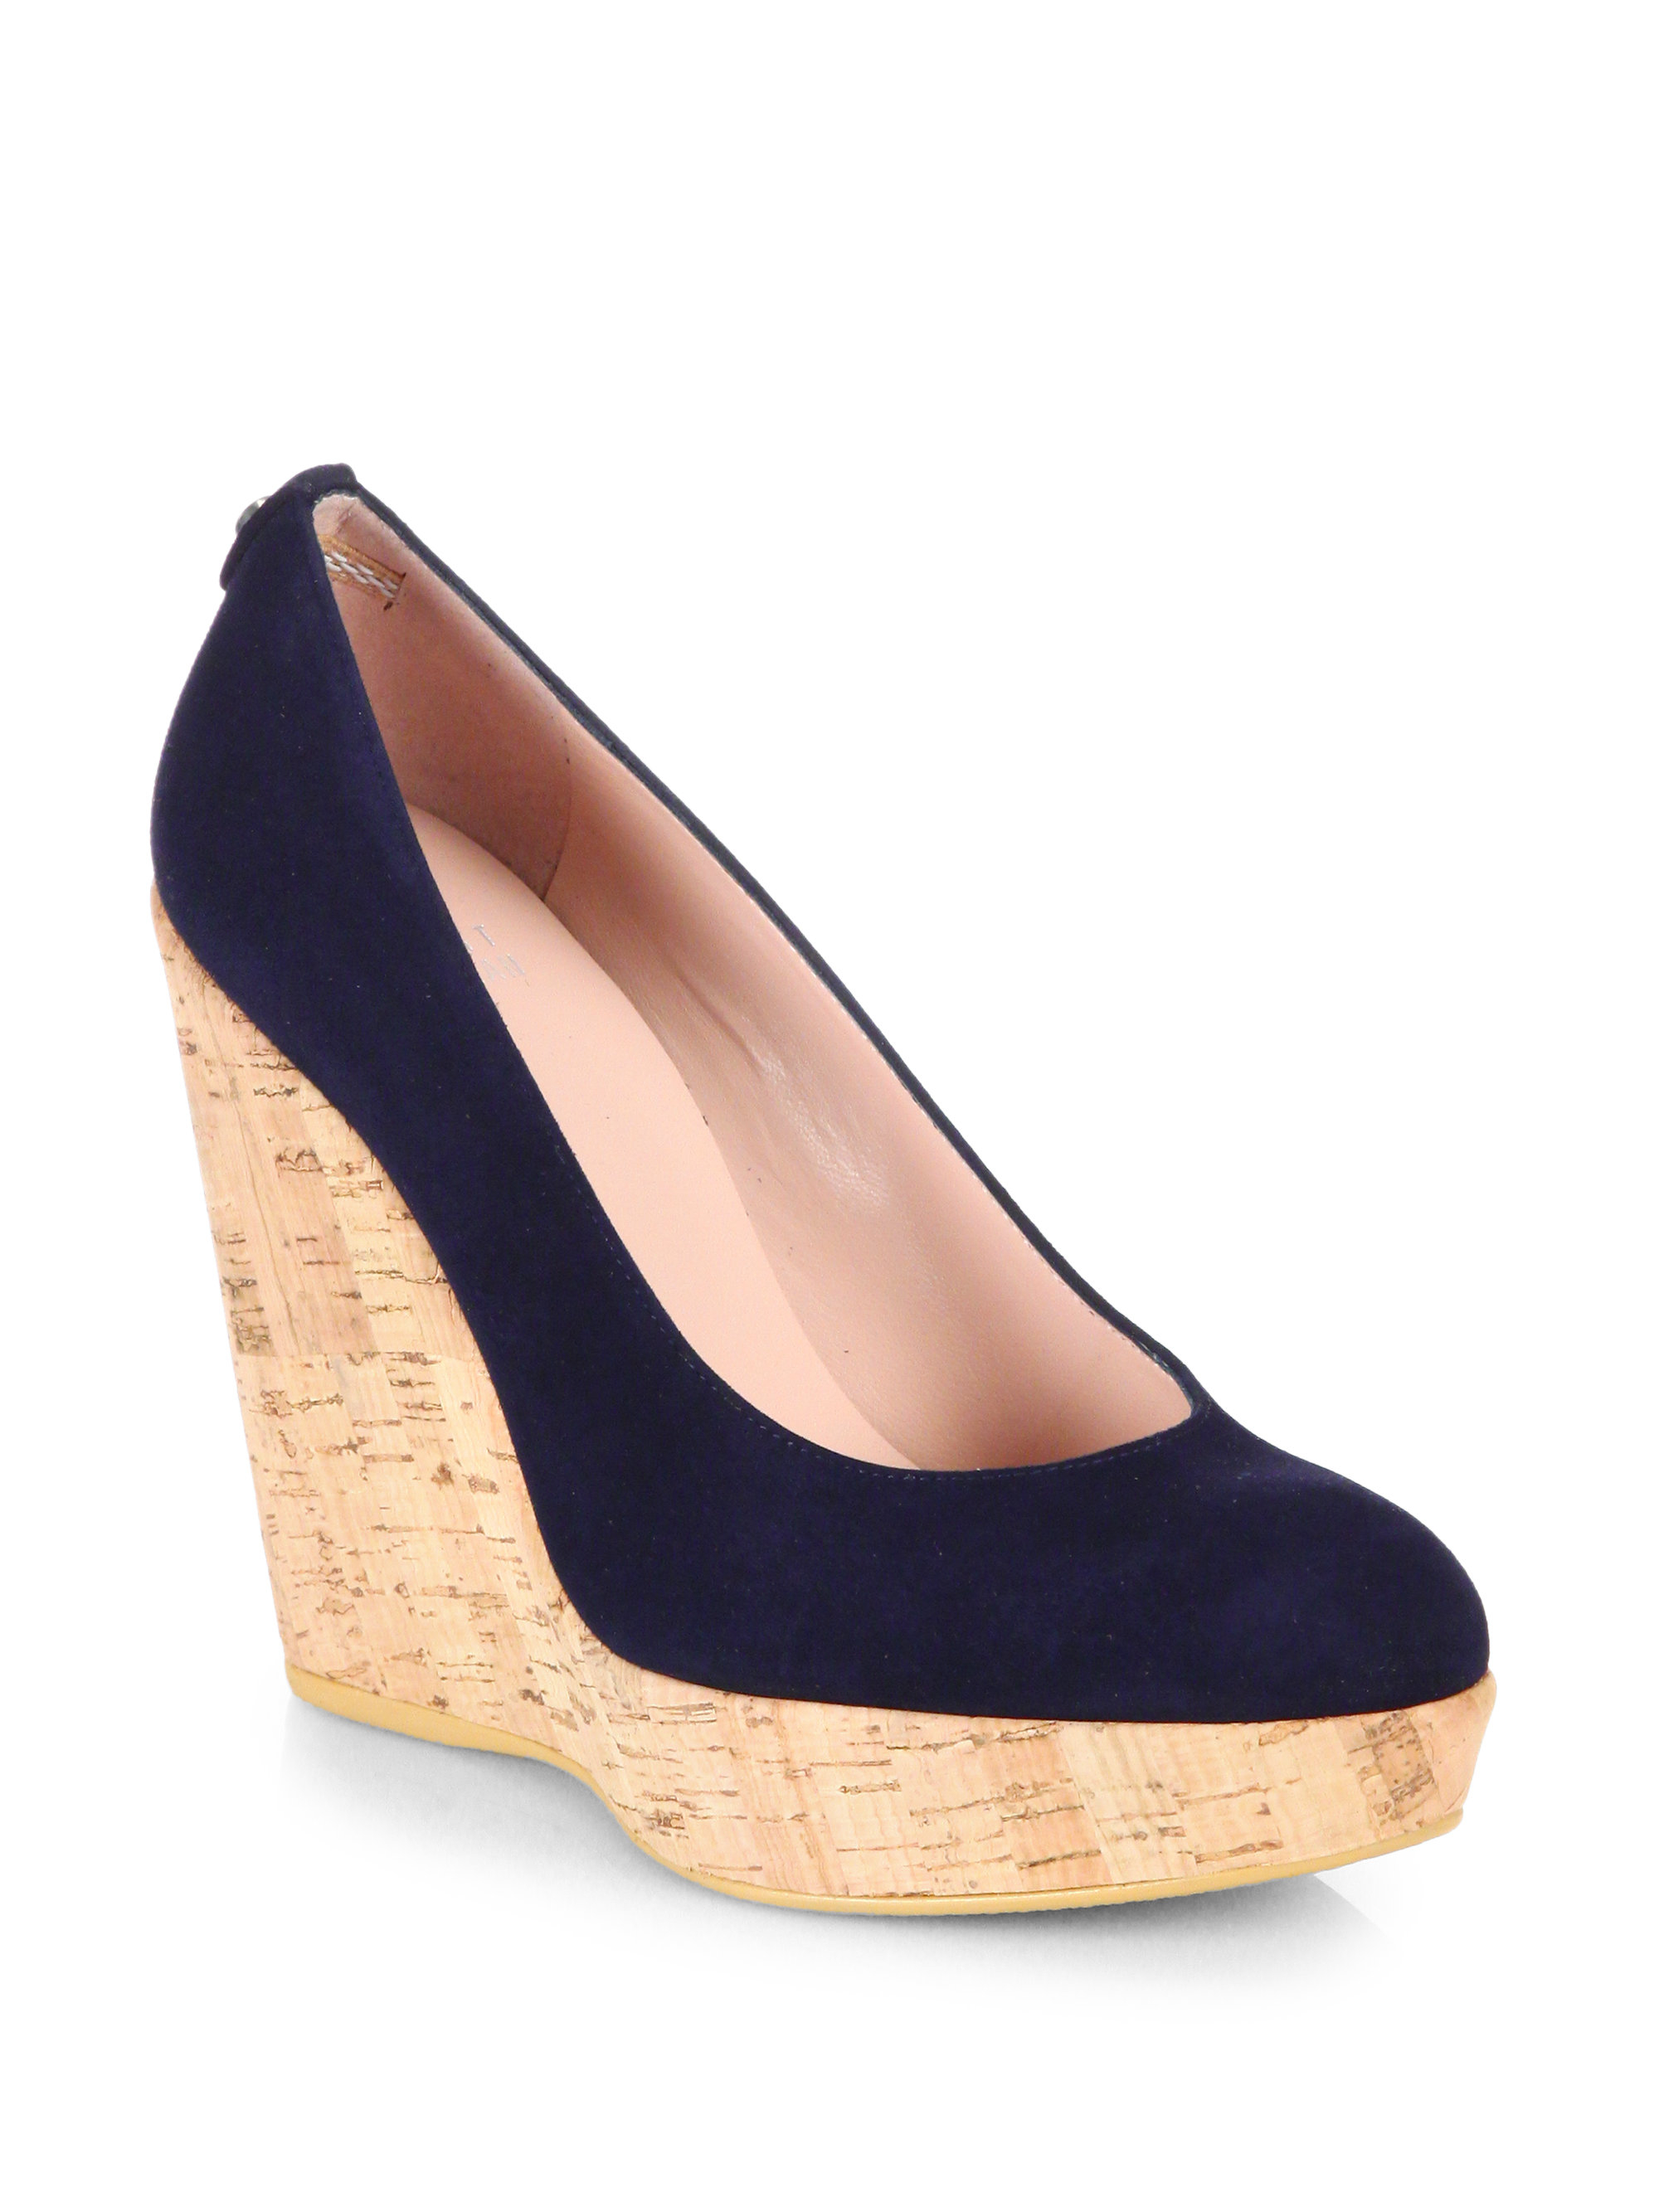 Blue Suede Steve Madden Shoes Men